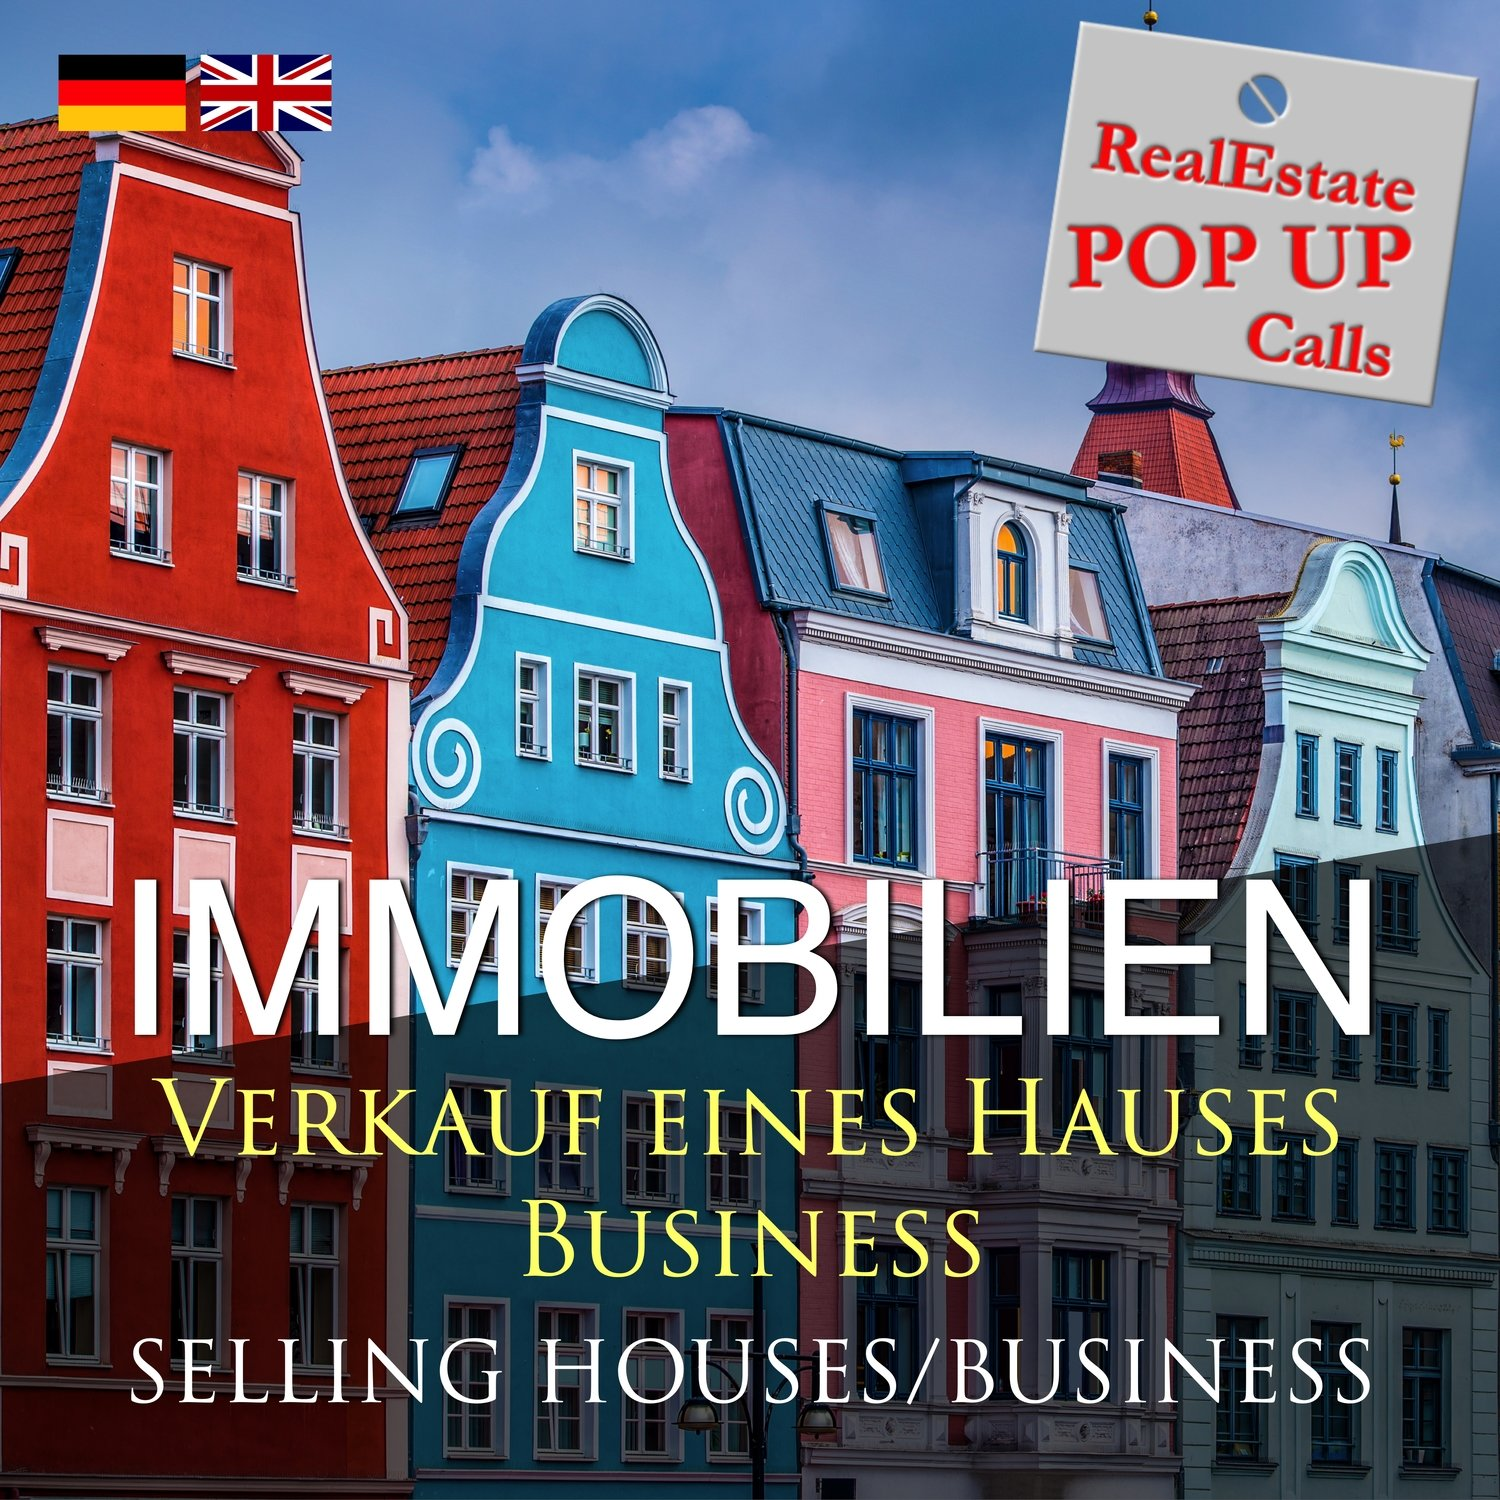 RealEstate POP UP Call - VERKAUF EINES HAUSES - SELLING HOUSES - English & German